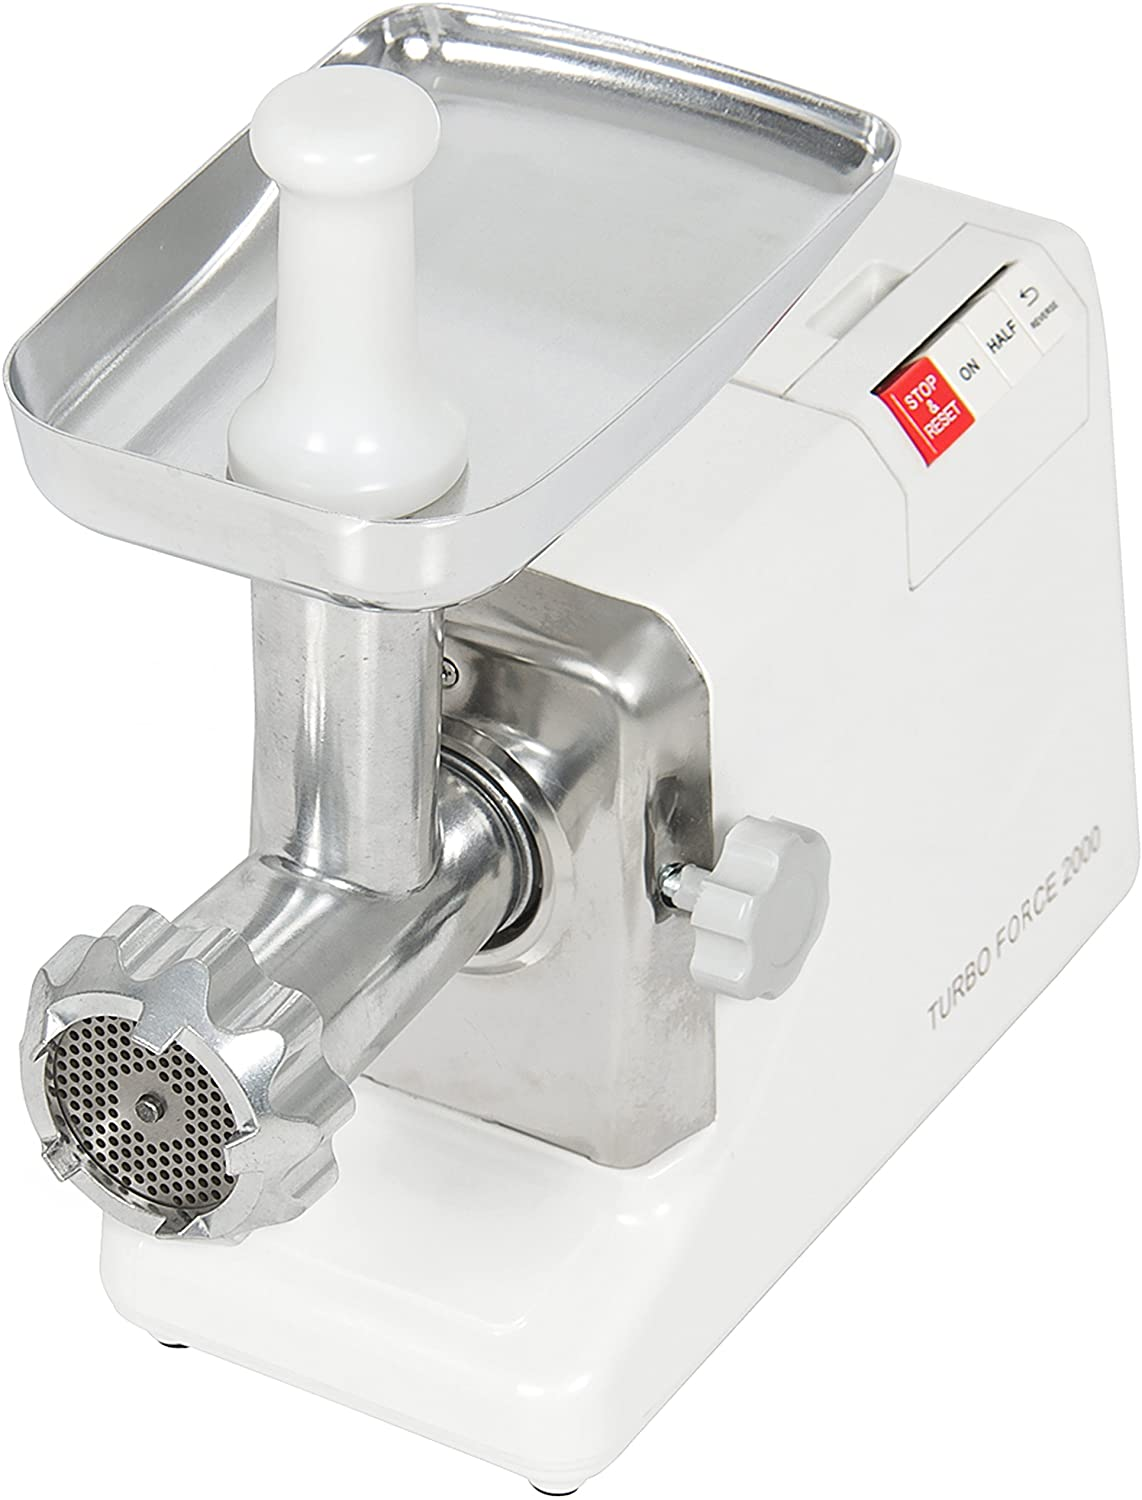 Sunmile sm-g33 etl electric stainless steel meat grinder